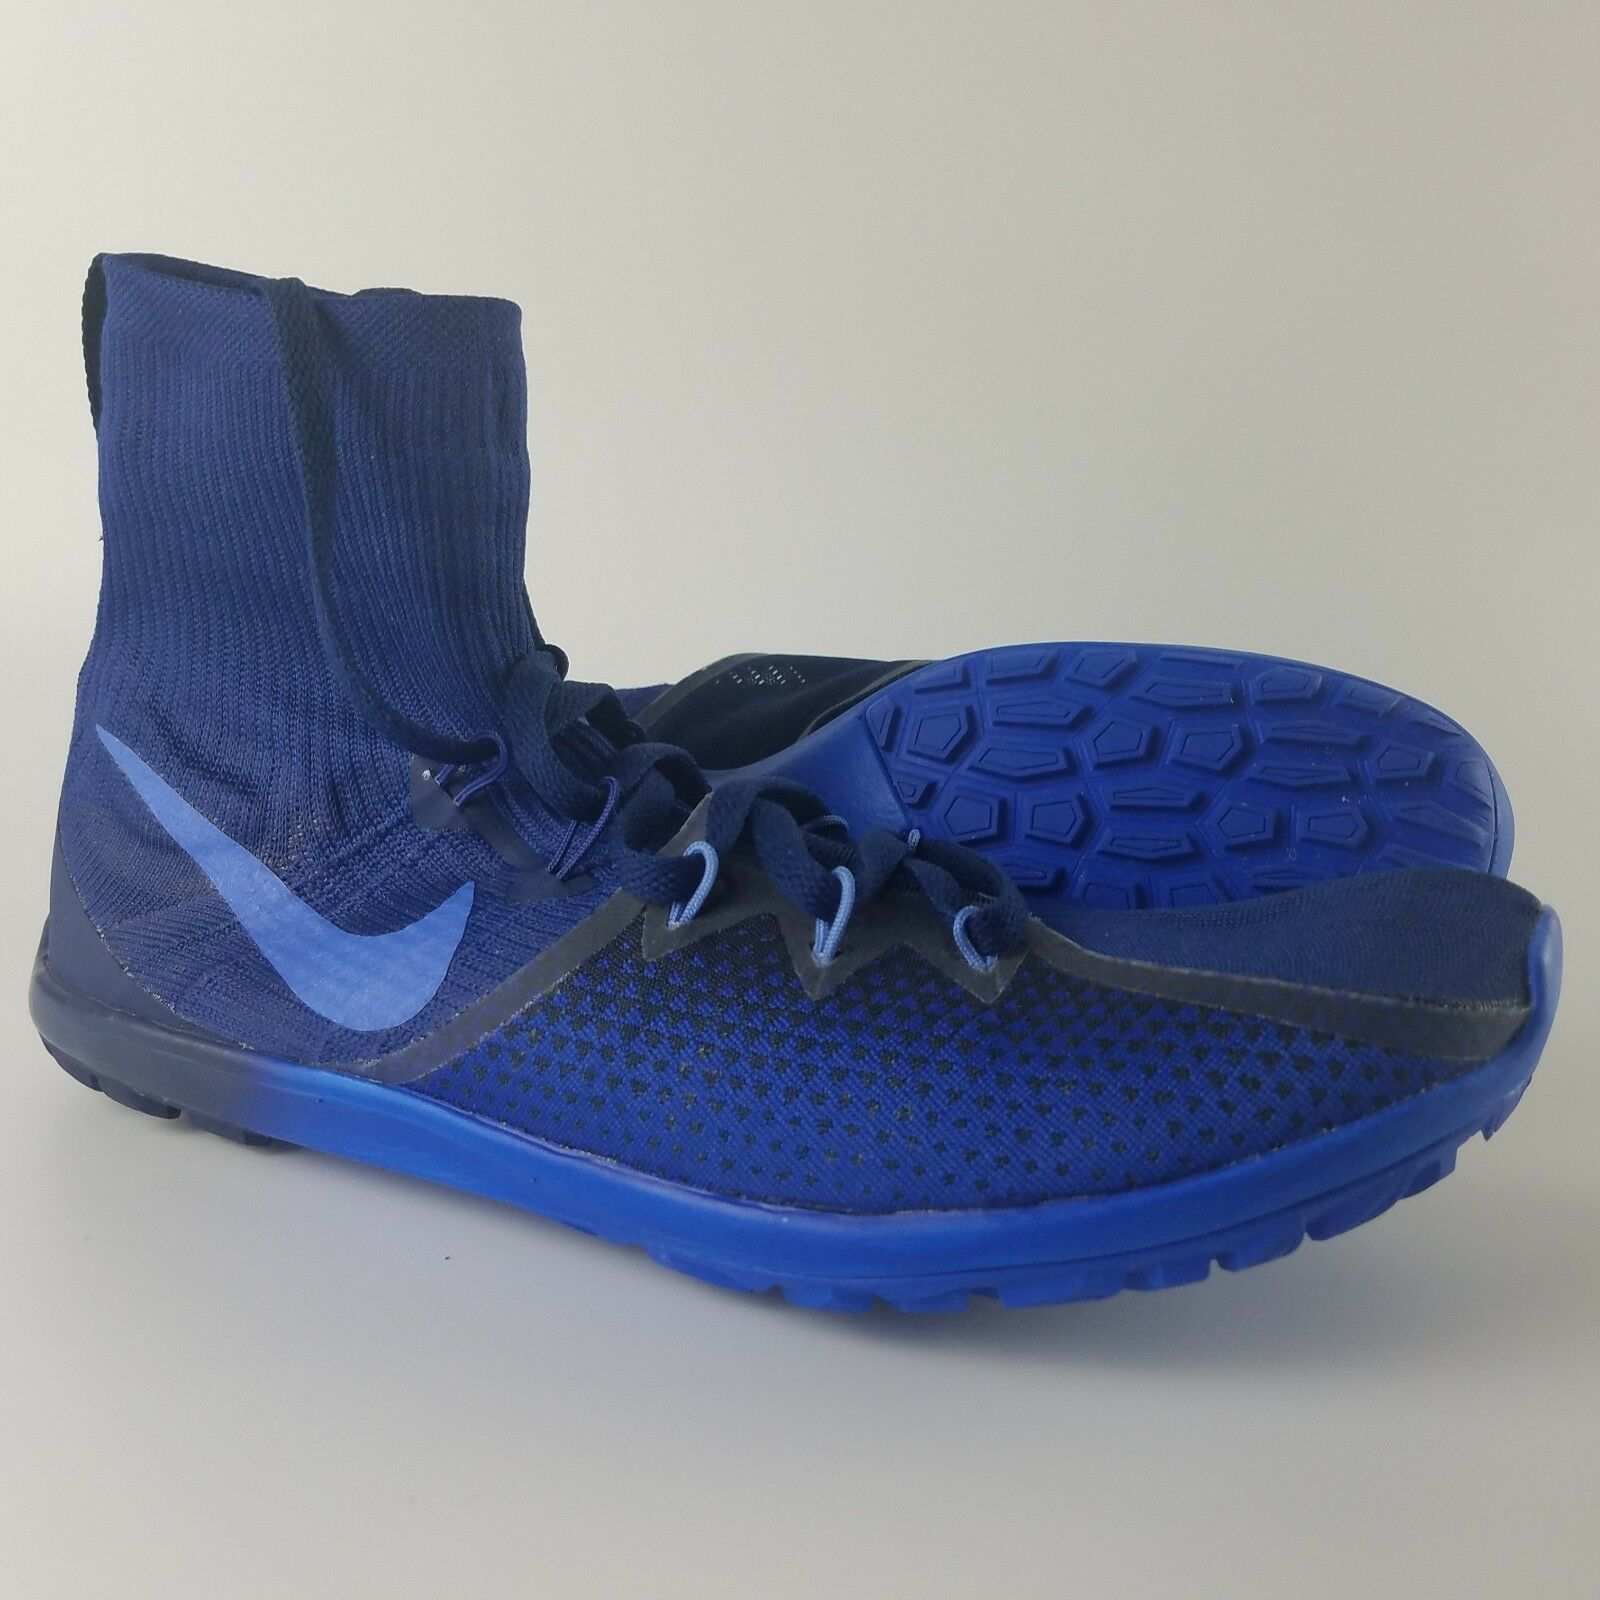 Nike Running Zoom Victory Waffle 4 Track Shoes Men's Comfortable Cheap women's shoes women's shoes